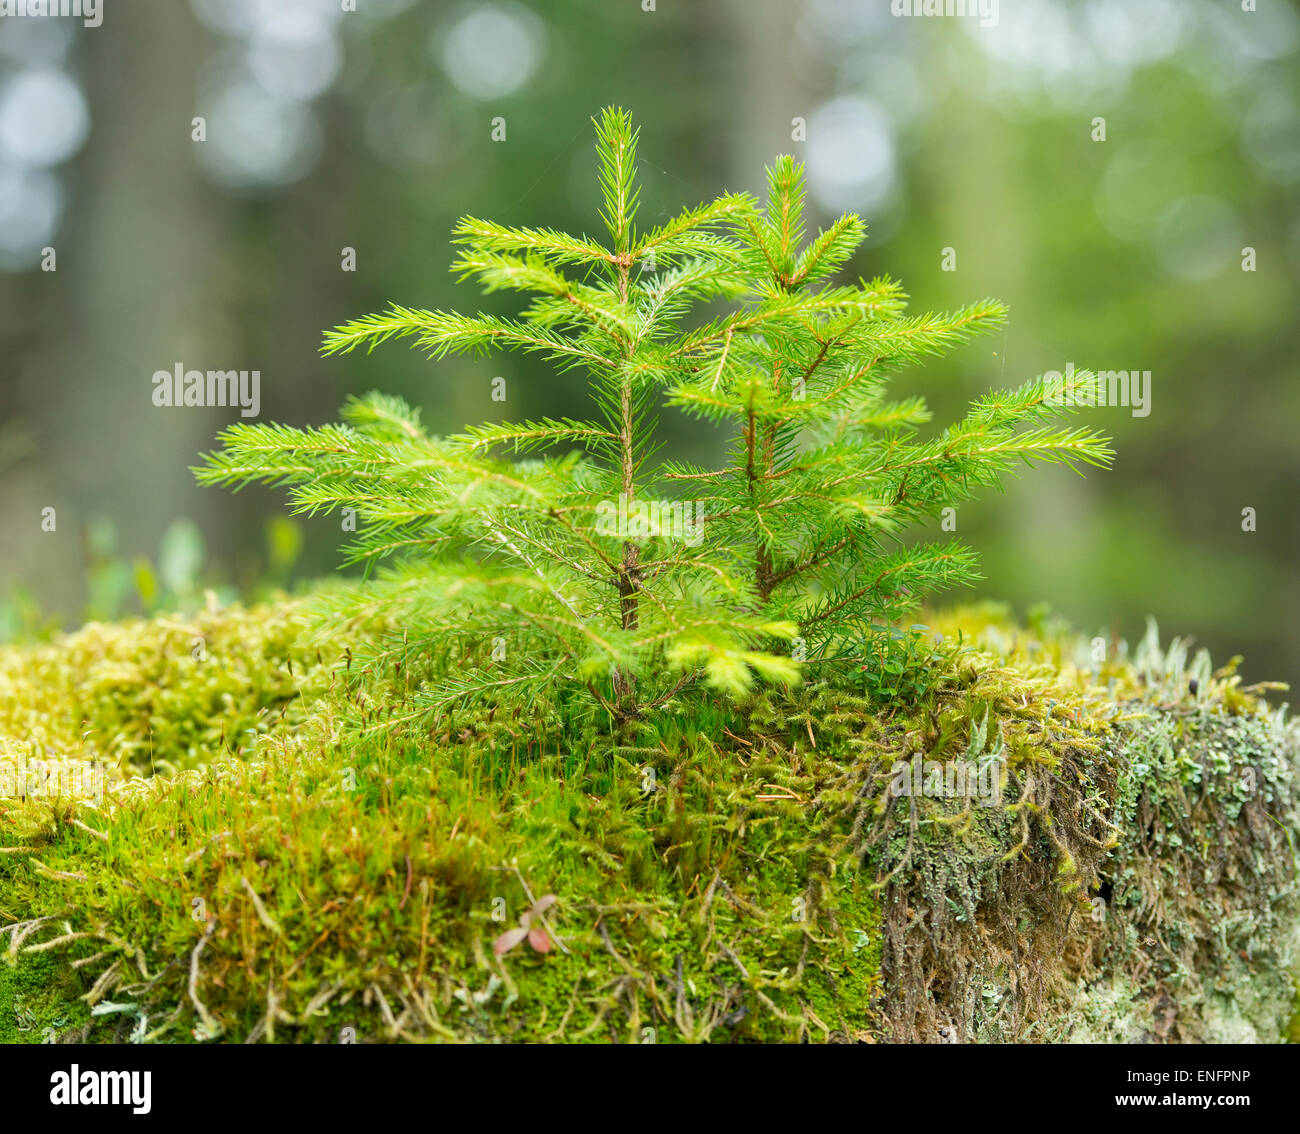 Young Norway Spruce trees (Picea abies), growing on moss, Harz National Park, Lower Saxony, Germany - Stock Image